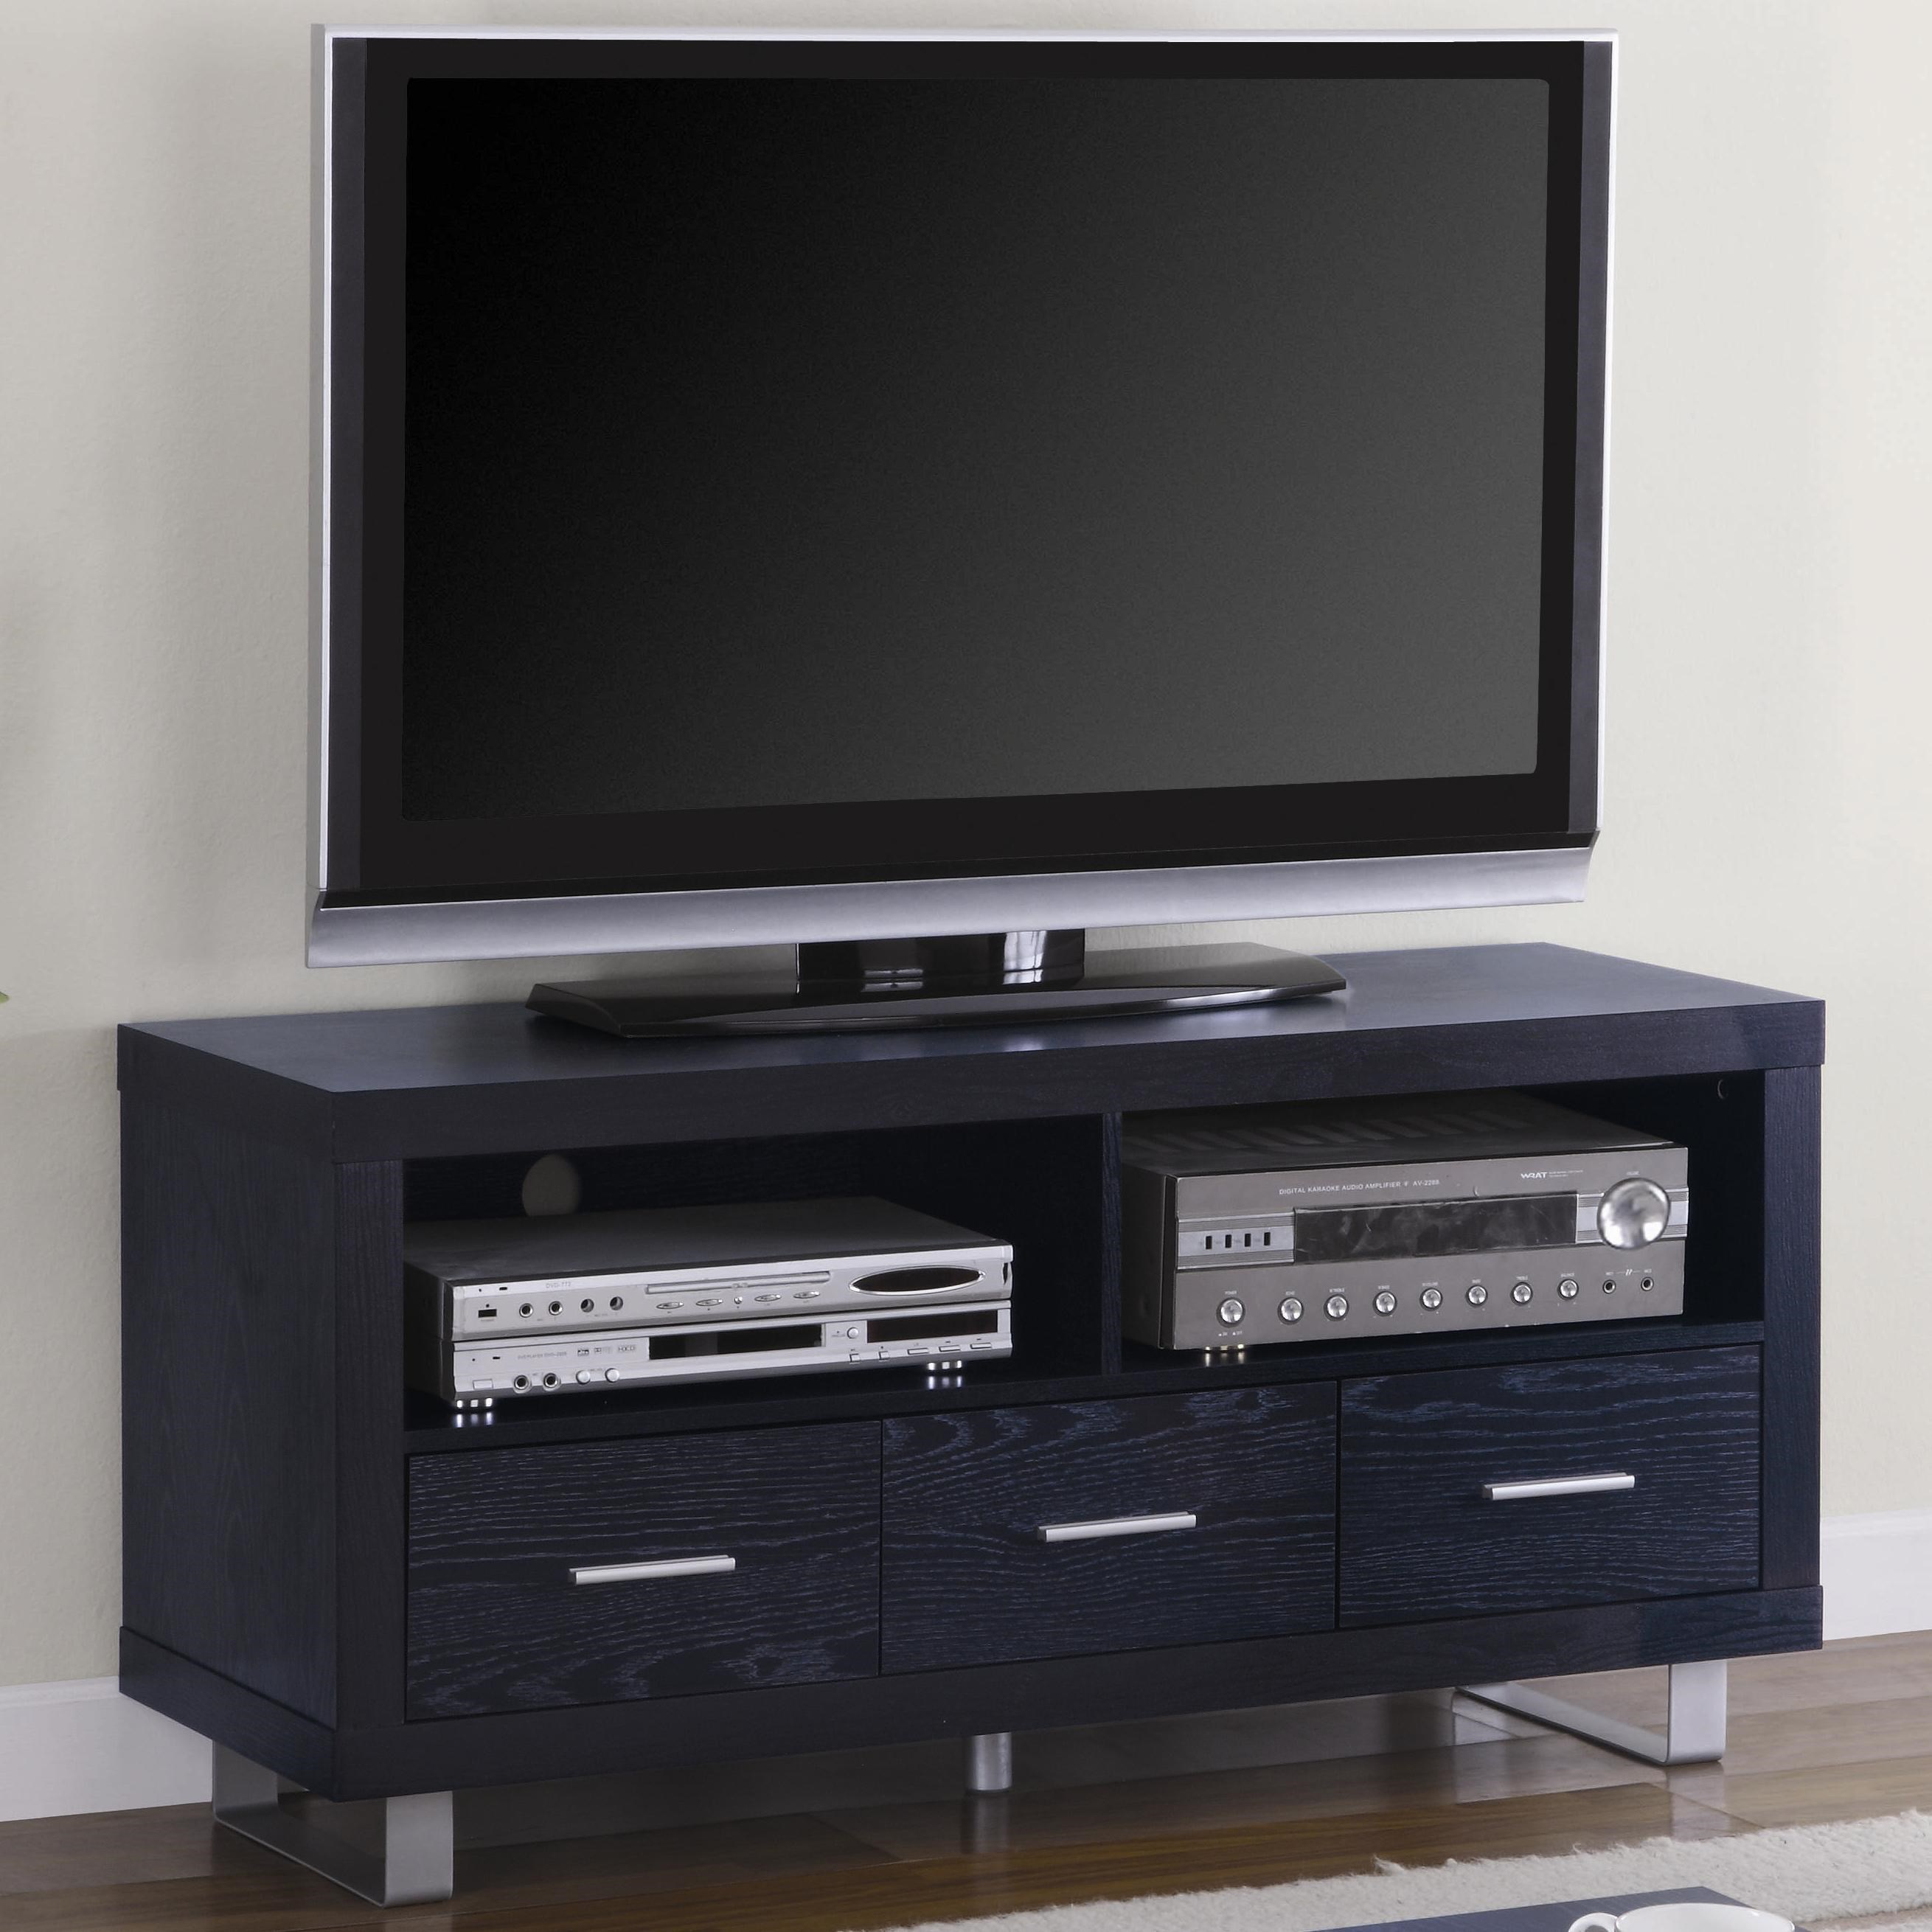 Coaster TV Stands Contemporary Media Console With Shelves And Drawers    Coaster Fine Furniture